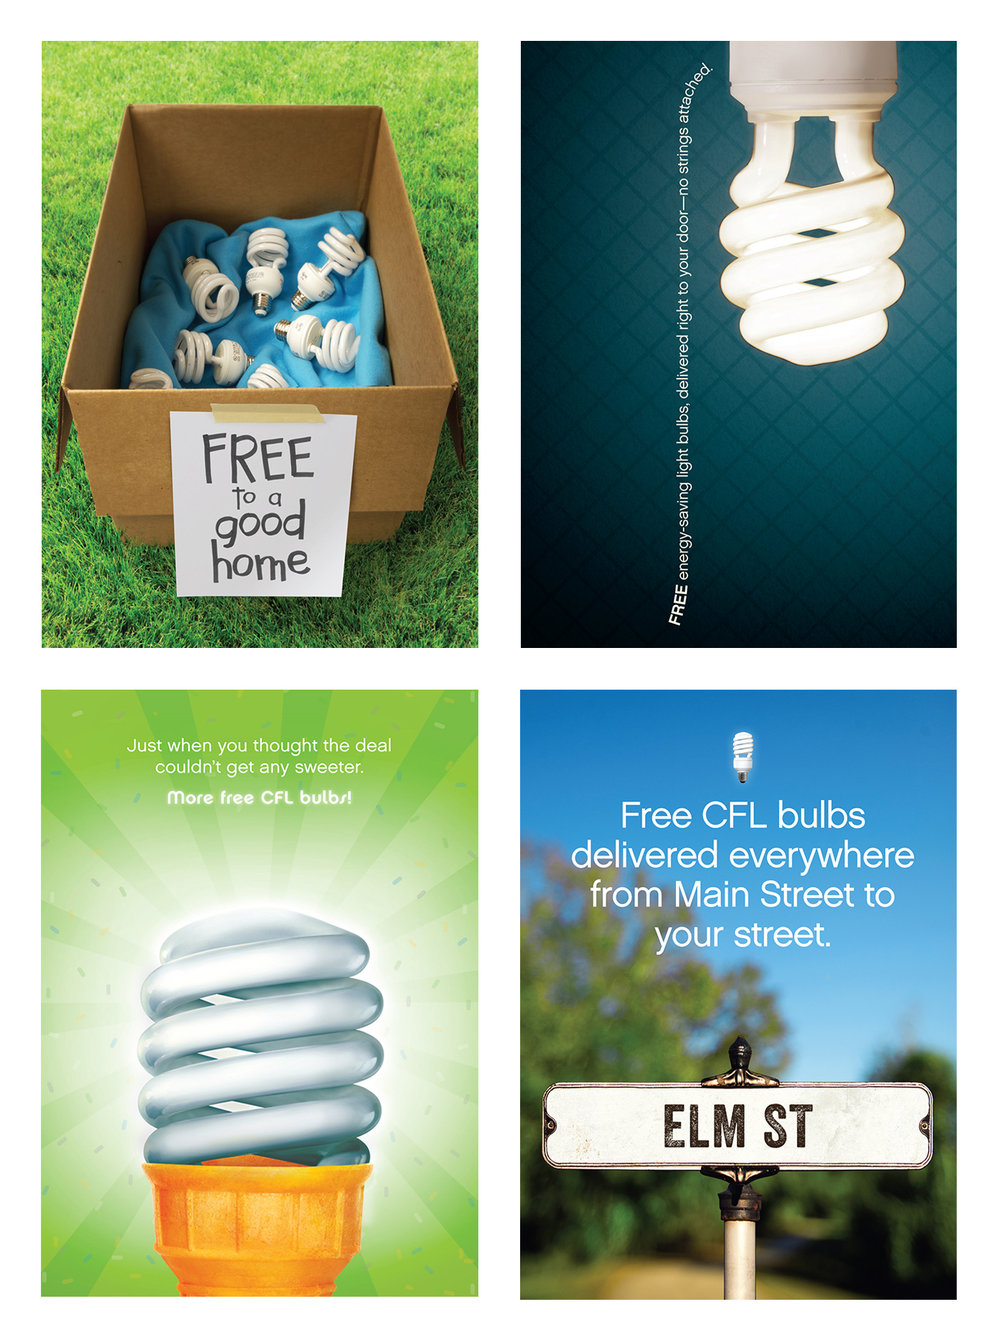 CFL GIVEAWAY DIRECT MAIL Duke Energy Customers Were Skeptical When They  Found Out They Could Get